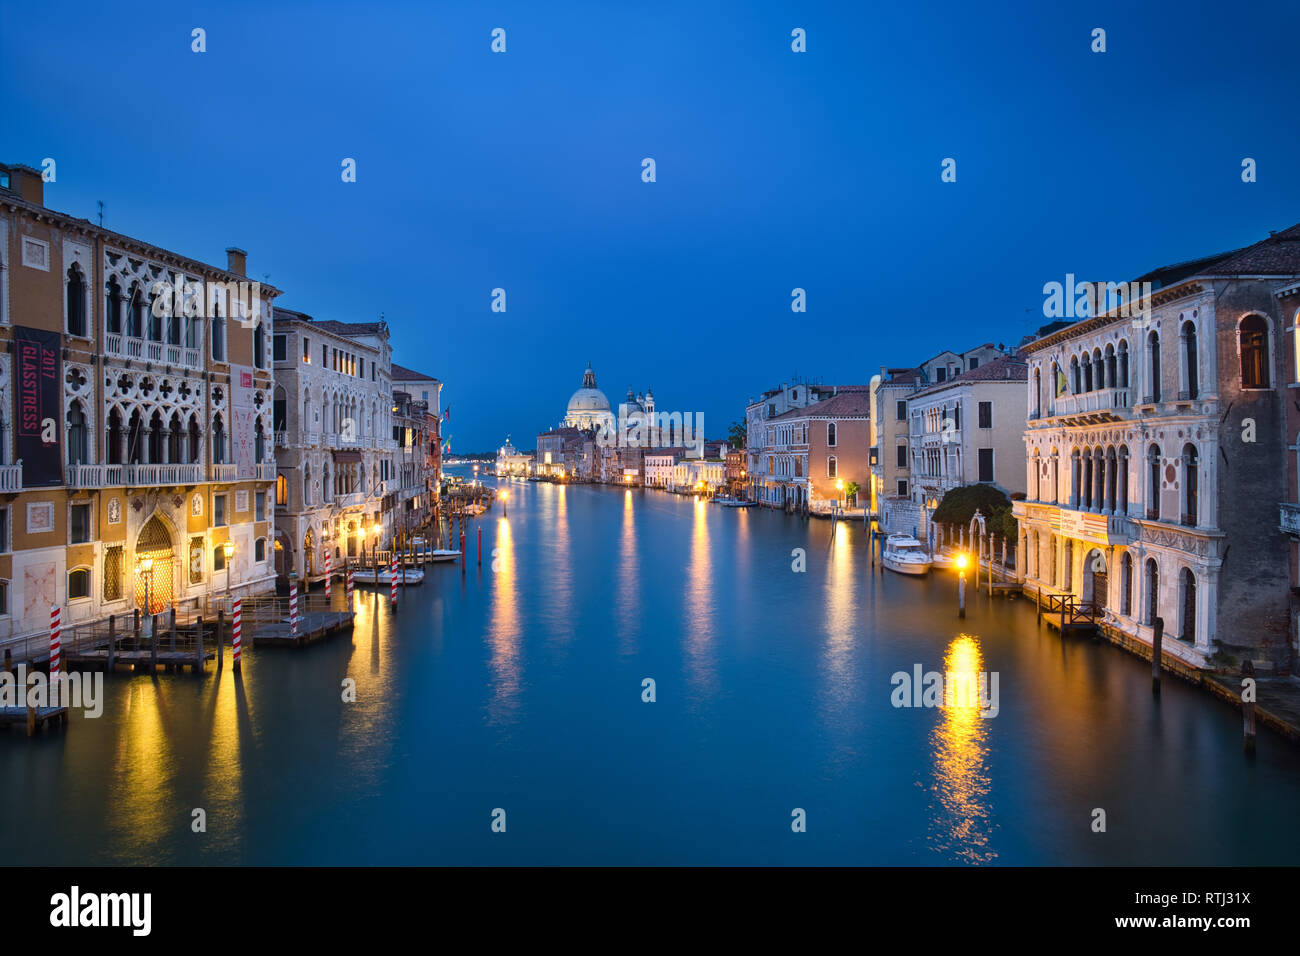 Photo of the venice grand canal at the blue hour time - Stock Image